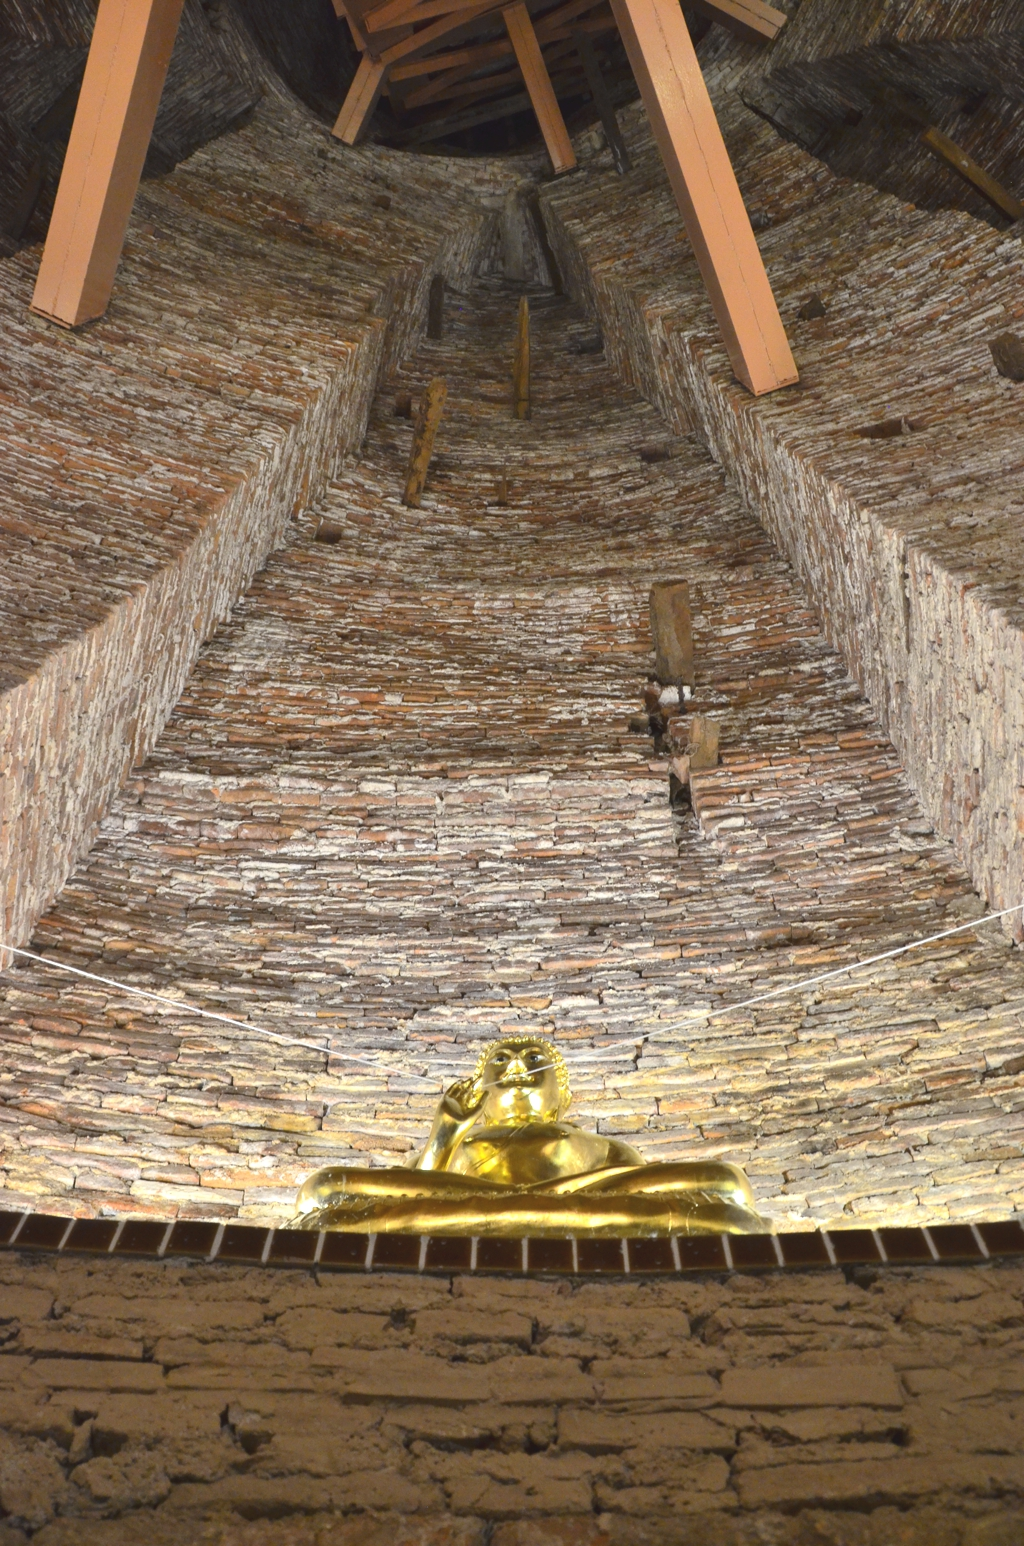 The Buddha image inside the spira of Wat Prayun